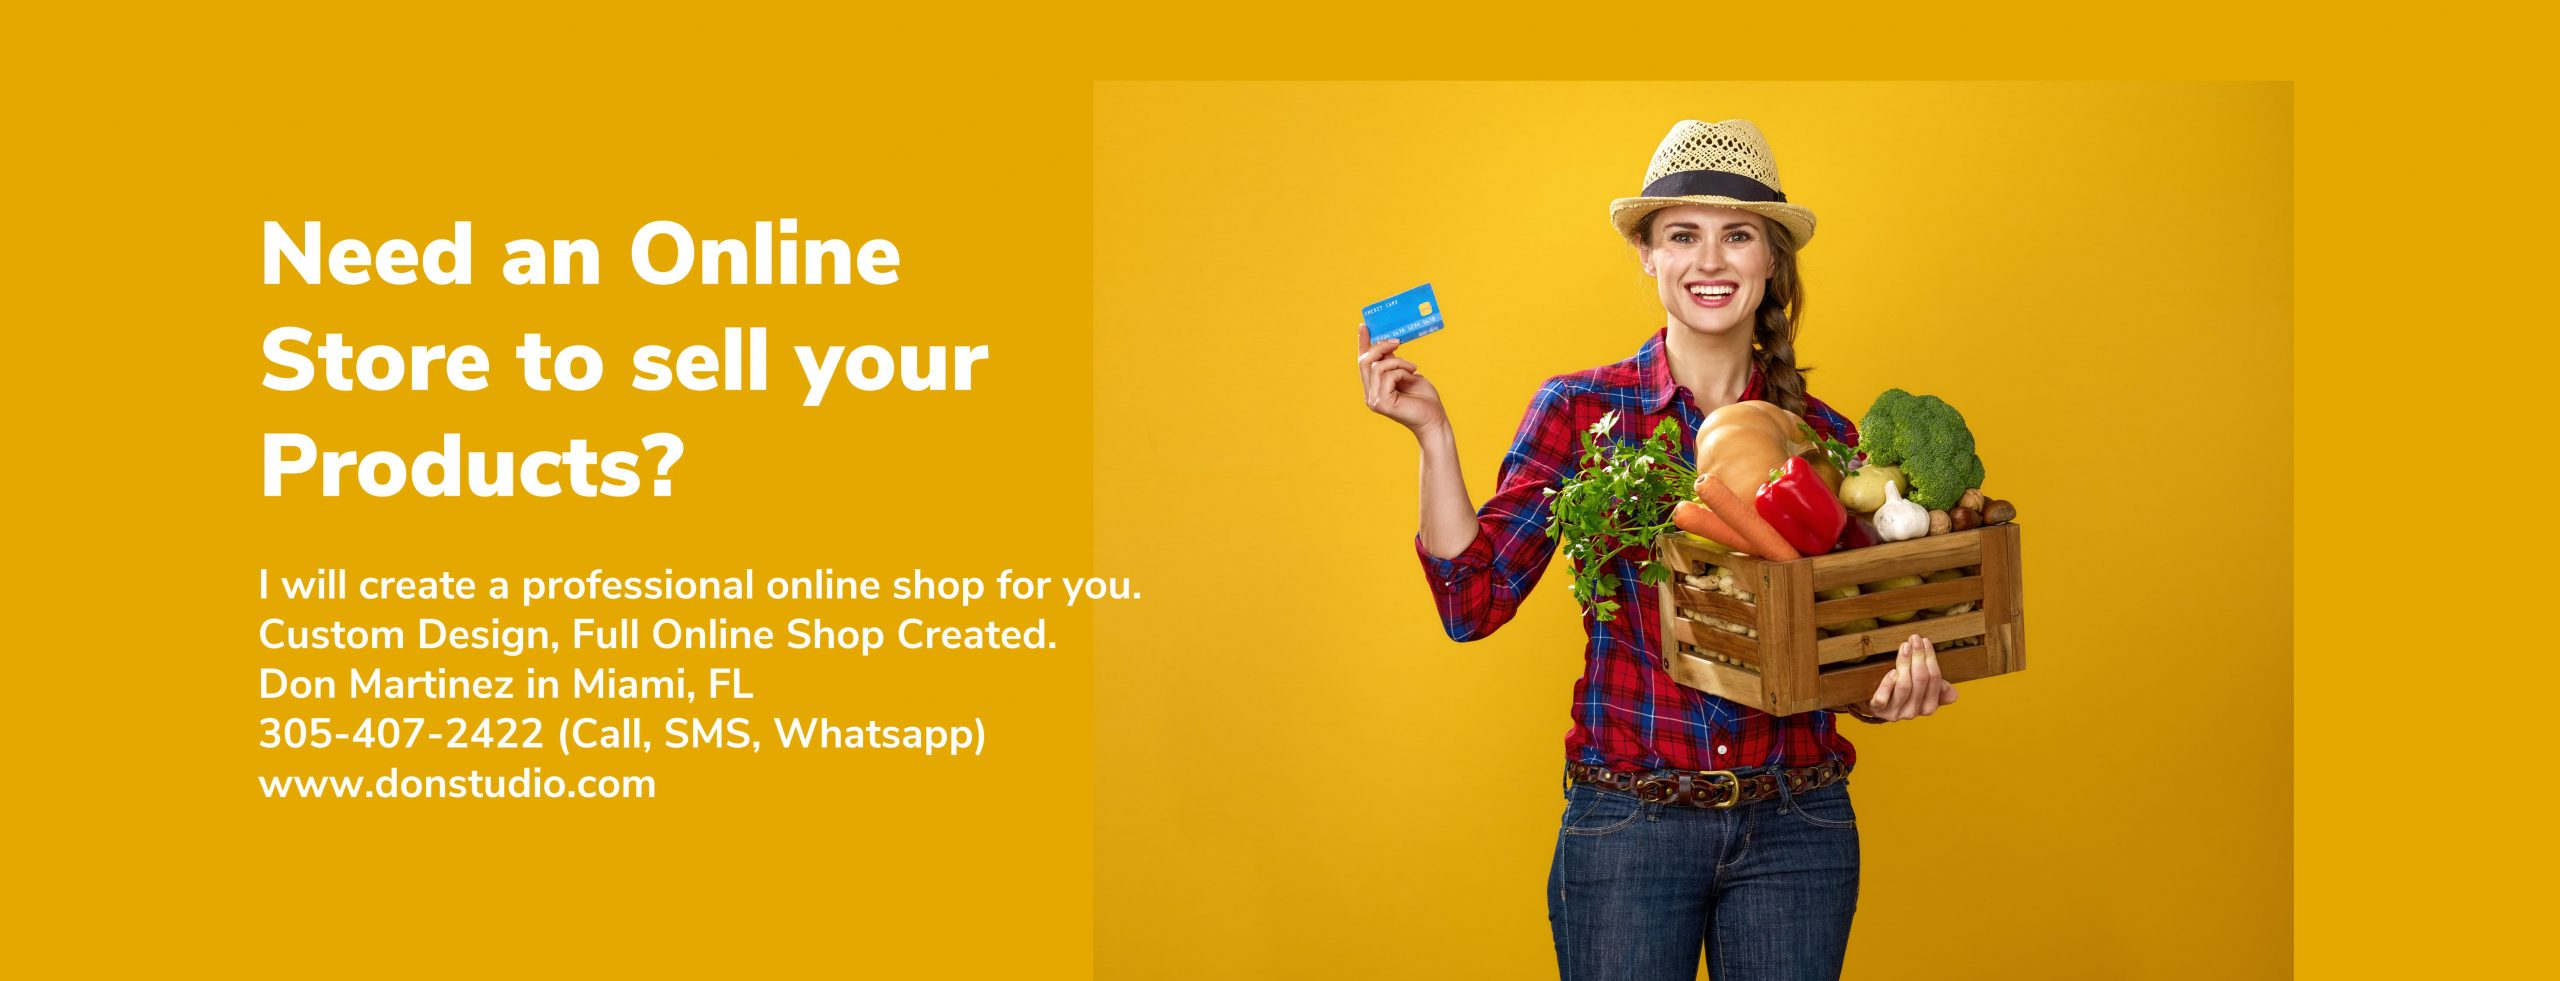 fresh vegetables online store ad scaled